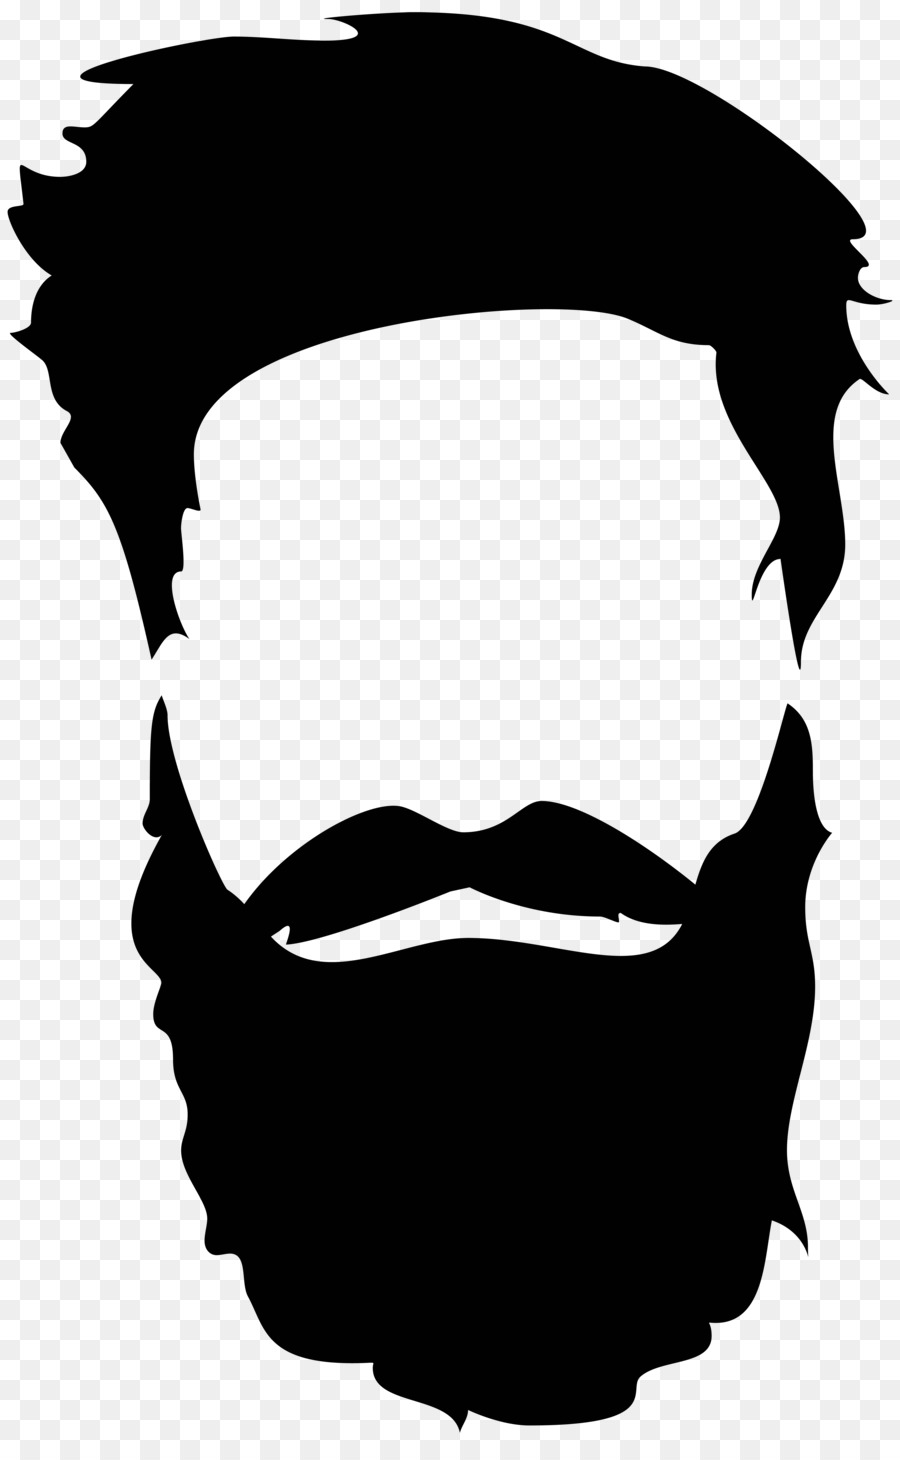 Beard Silhouette Royalty Free Beard And Moustache Png